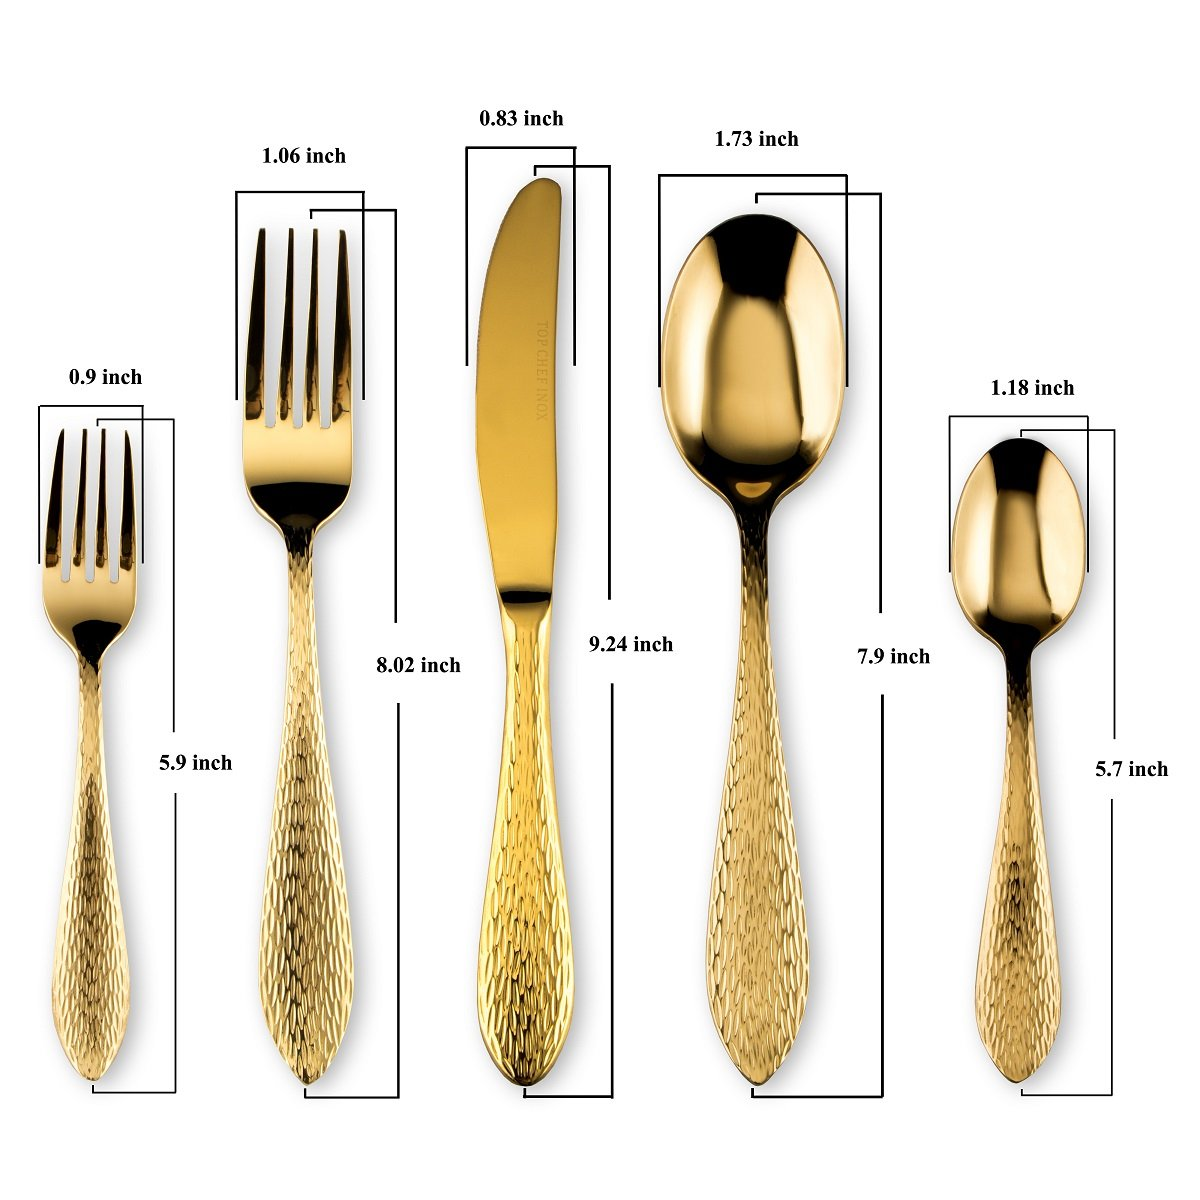 Amazon.com | Flatware Set 20 Pieces Modern Gold Plated Stainless Steel, Service for 4, 18/0: Flatware Sets